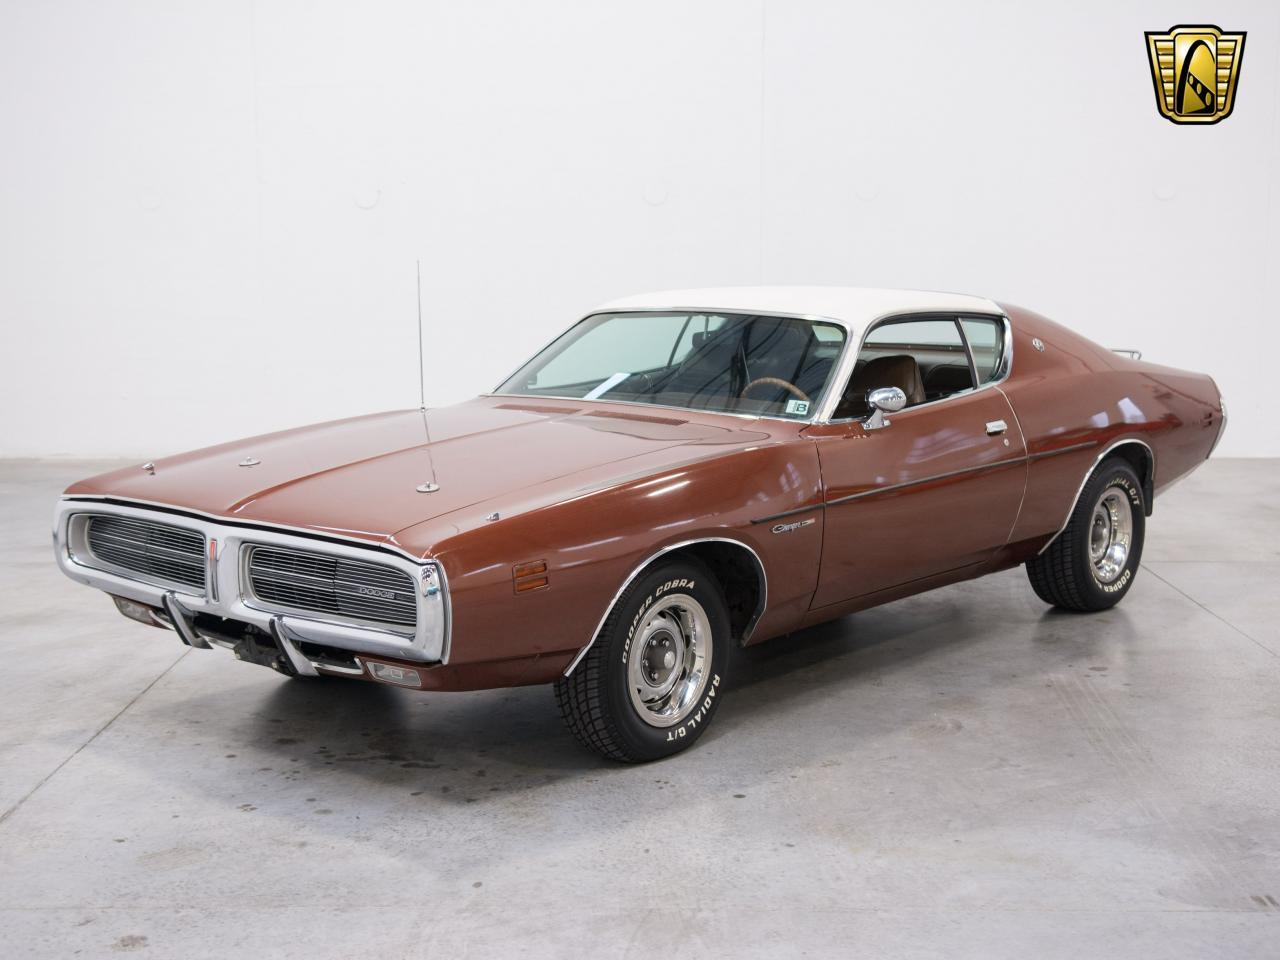 Large Picture of '71 Dodge Charger - $29,995.00 Offered by Gateway Classic Cars - Milwaukee - KEDX